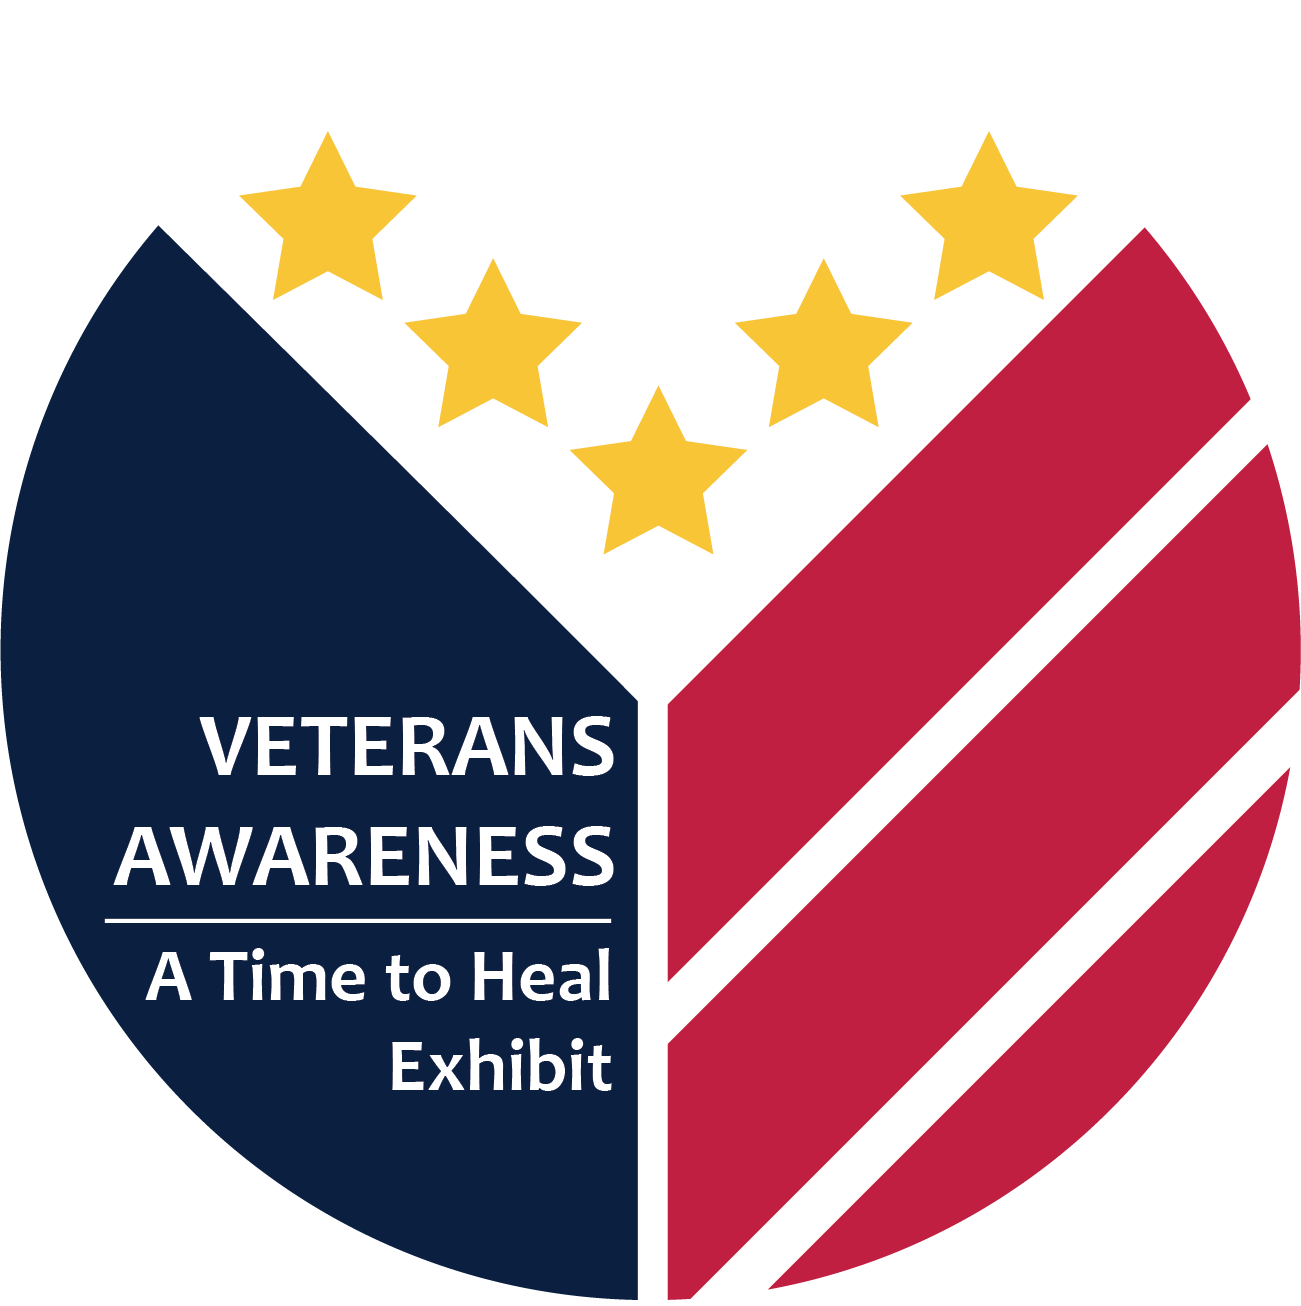 Veterans Awareness: A Time to Heal Exhibit